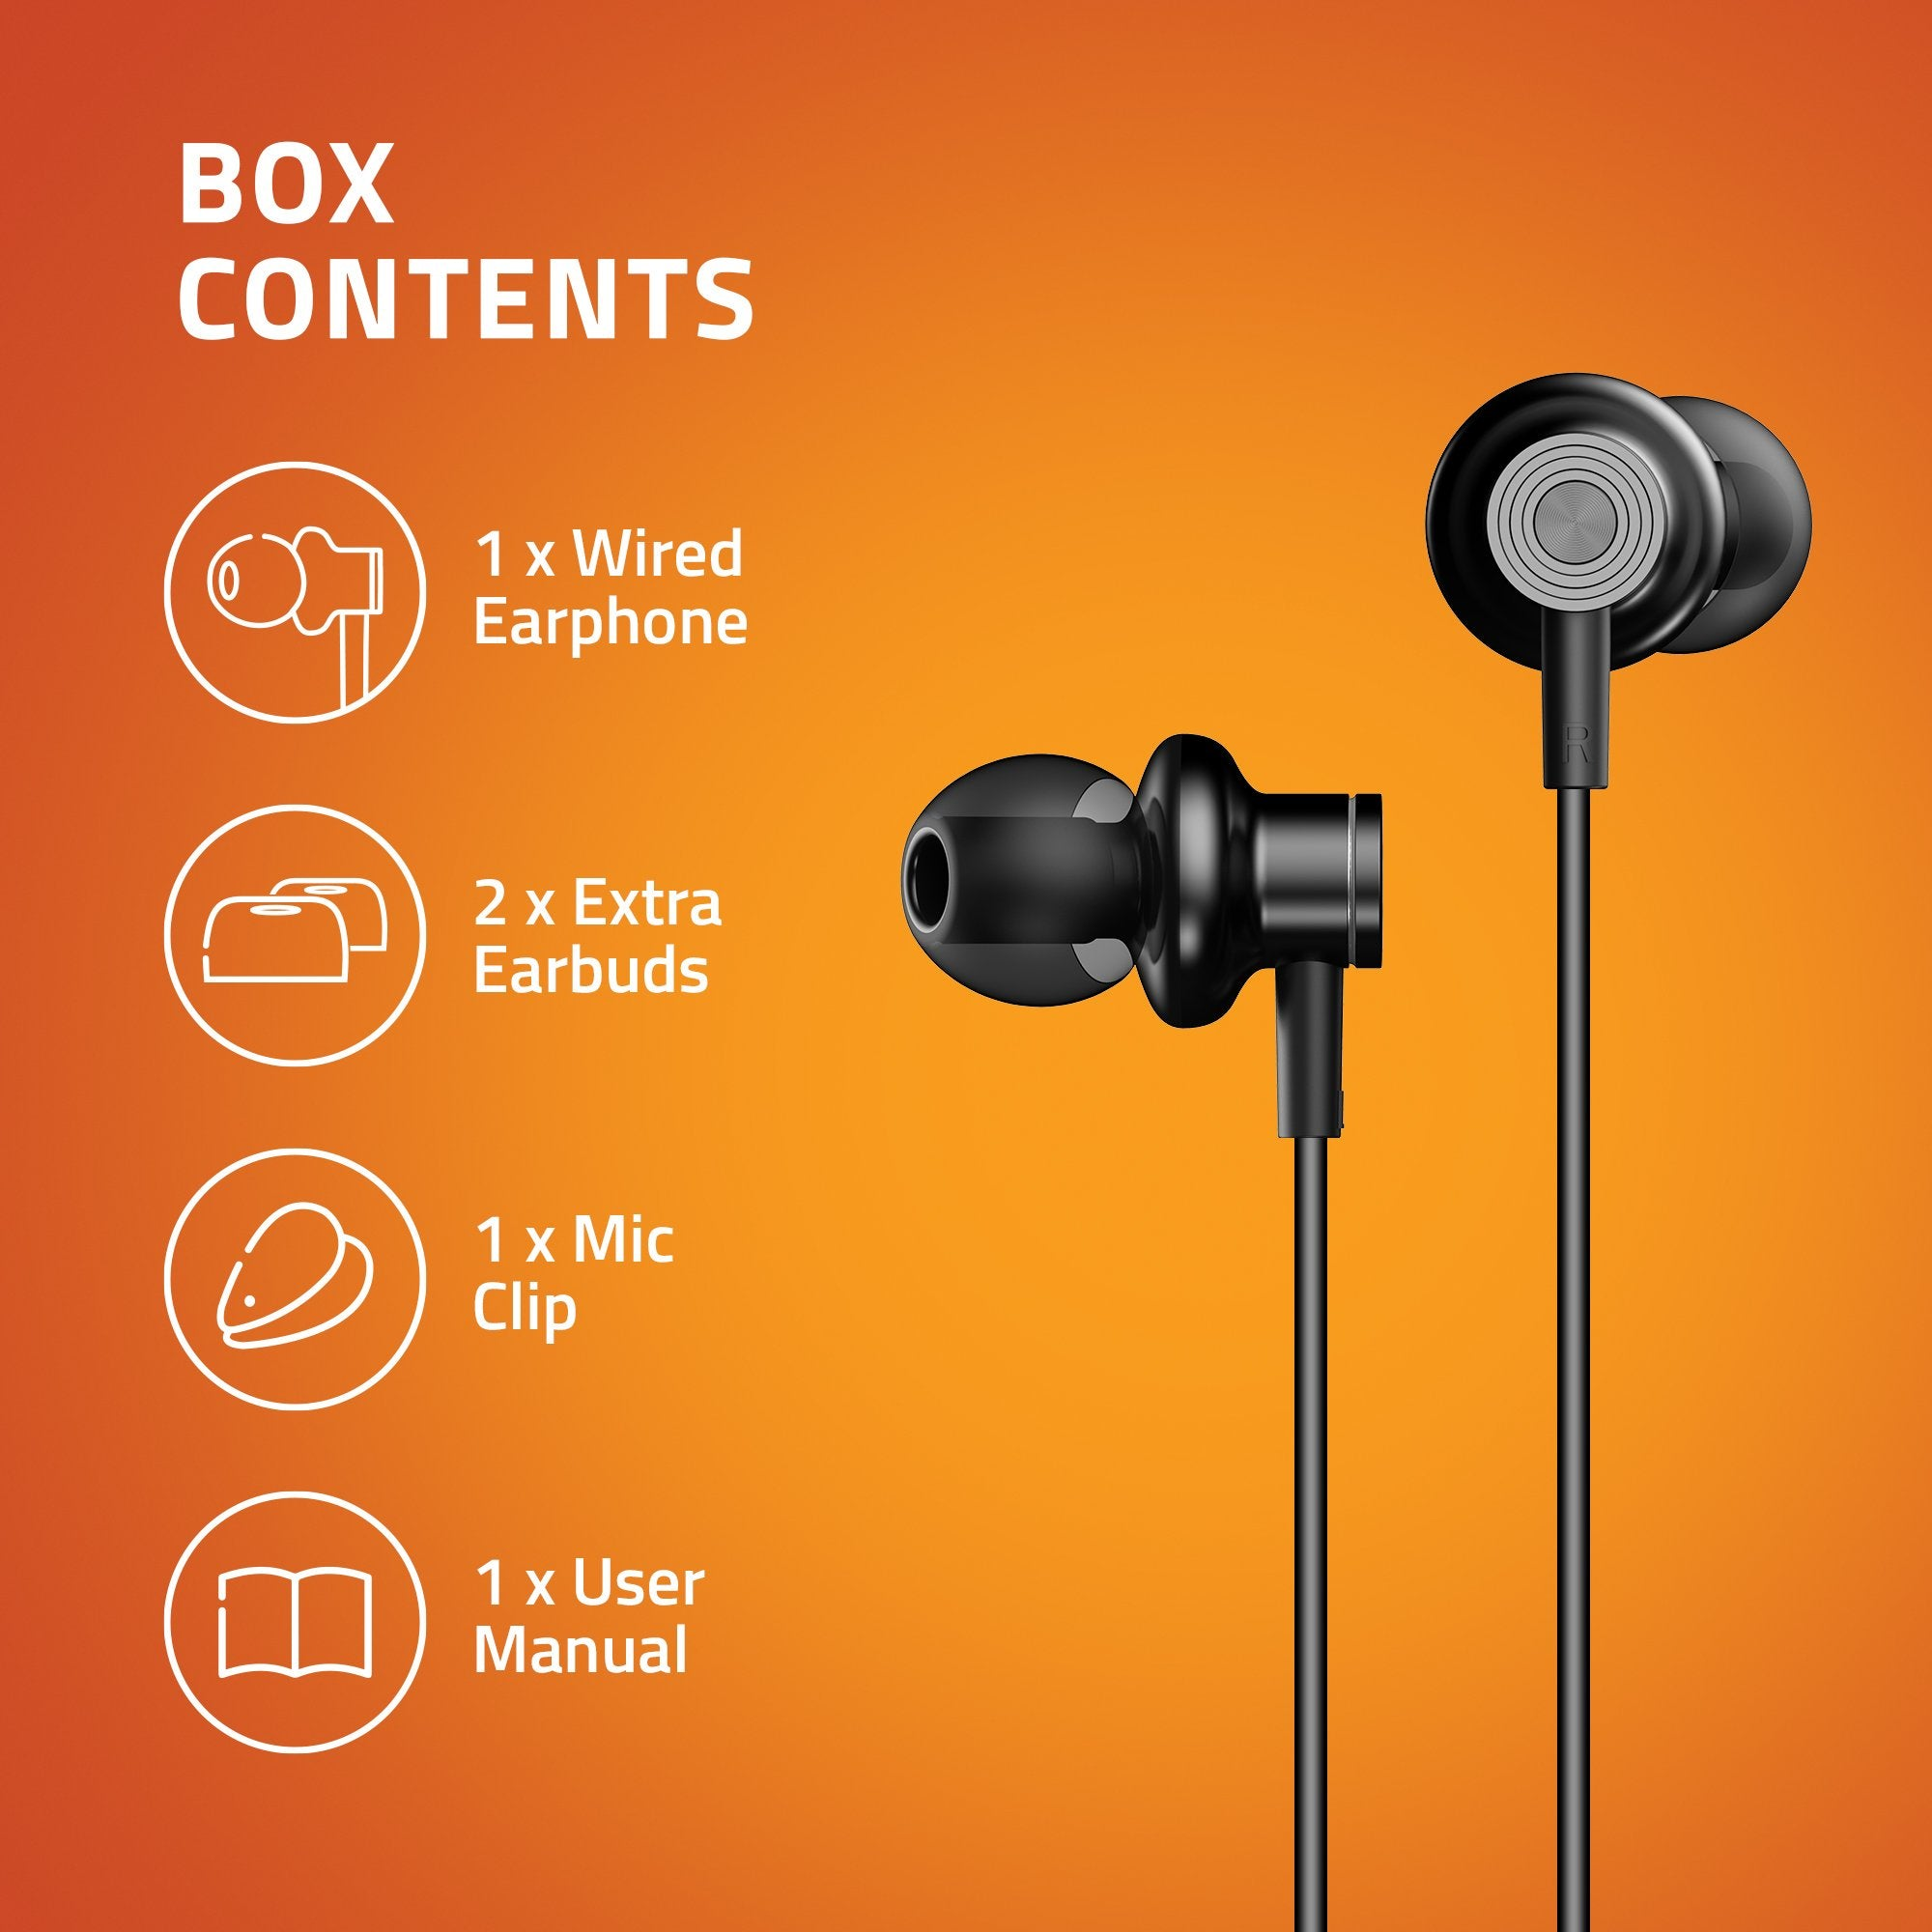 Artis E600M Earphones With Mic - Box Contents